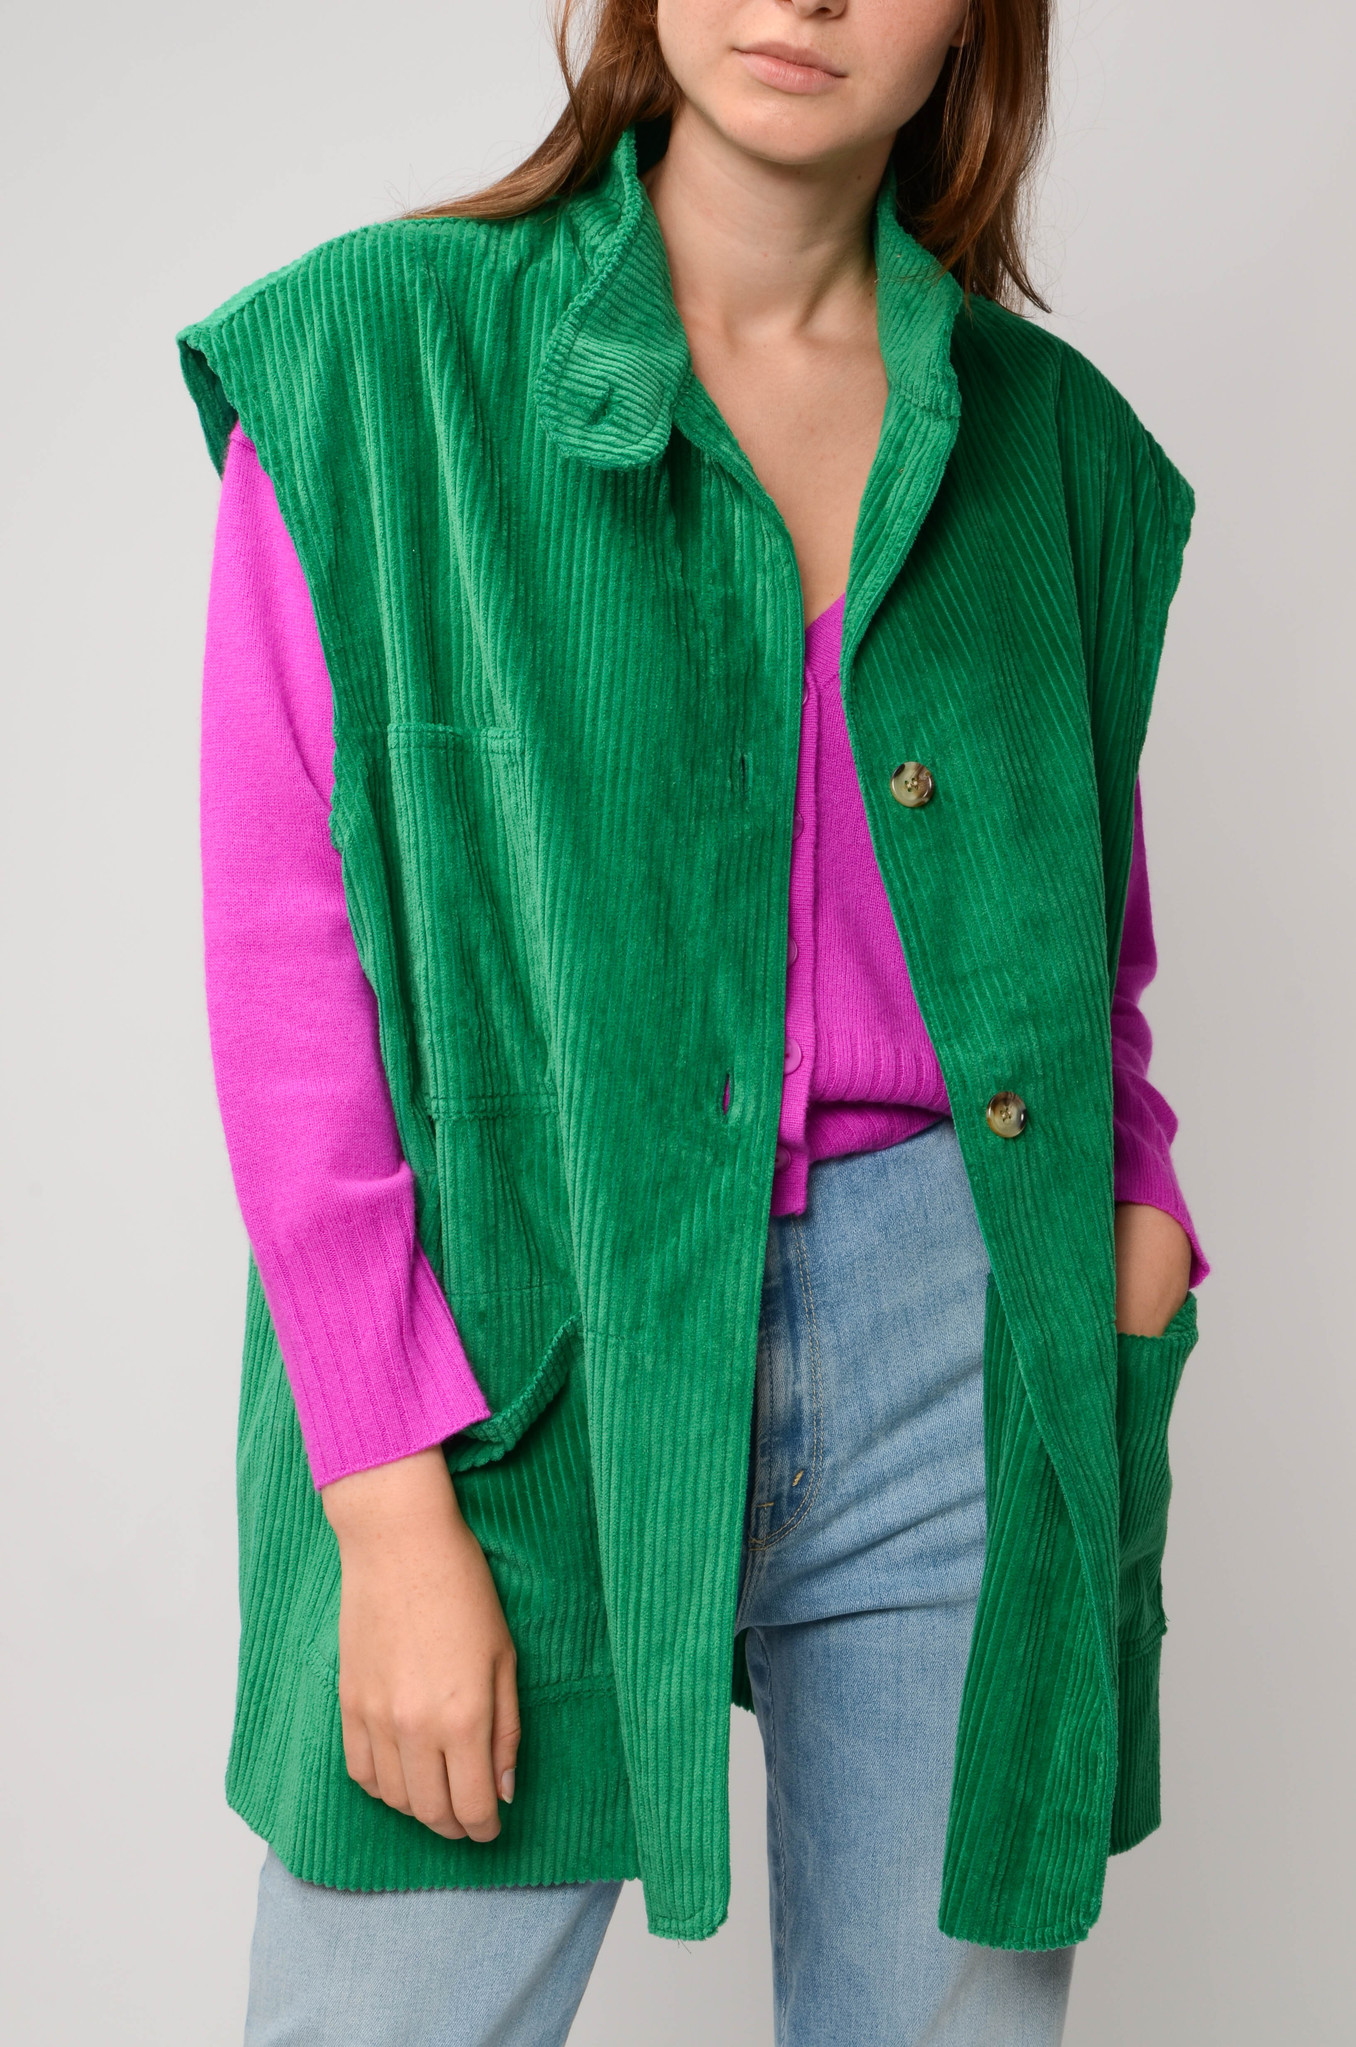 JAGGER JACK IN EMERALD GREEN-6